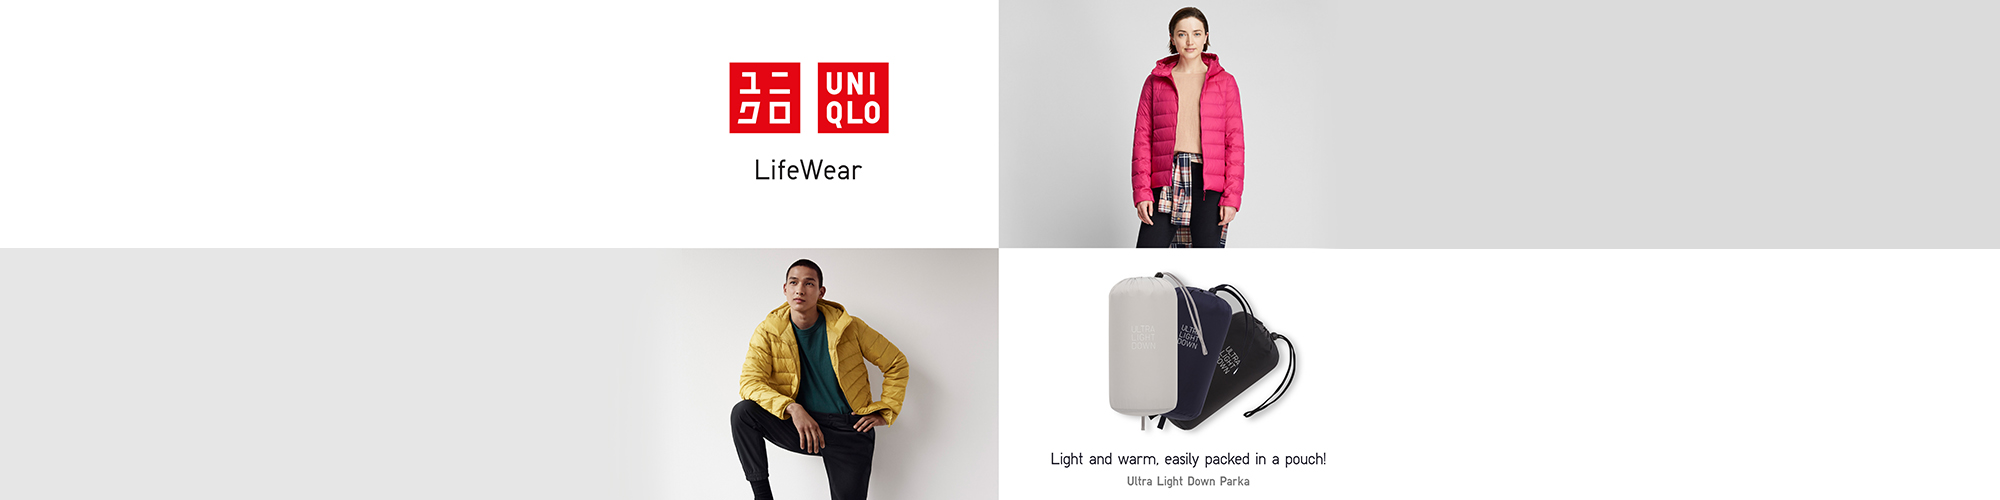 km_website_slider_uniqlo_281019